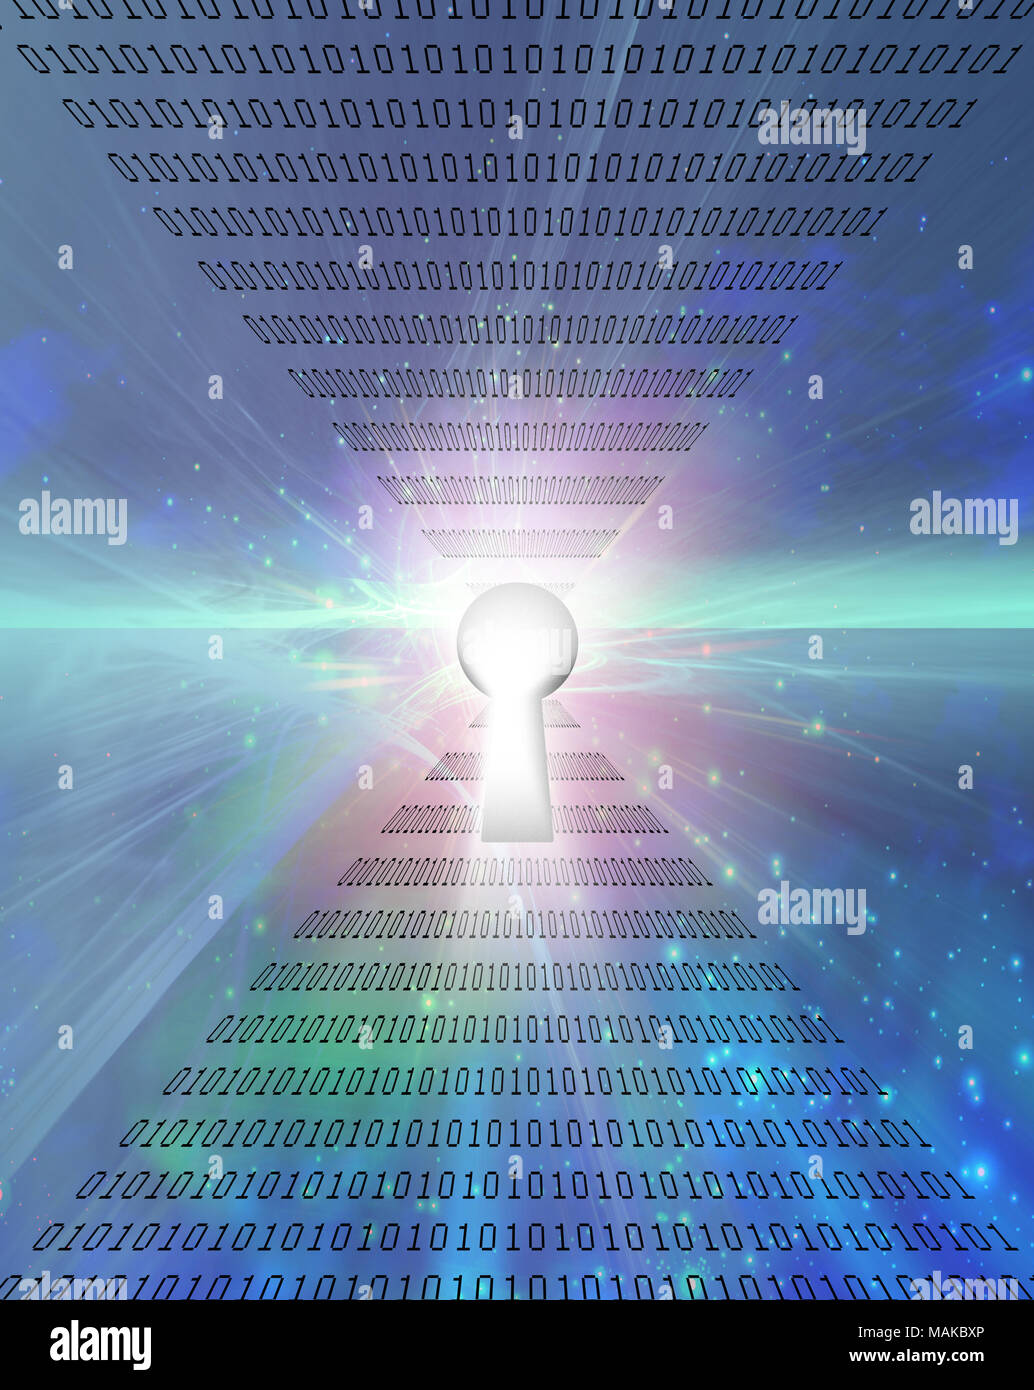 Modern art. Keyhole and binary code on a background. - Stock Image